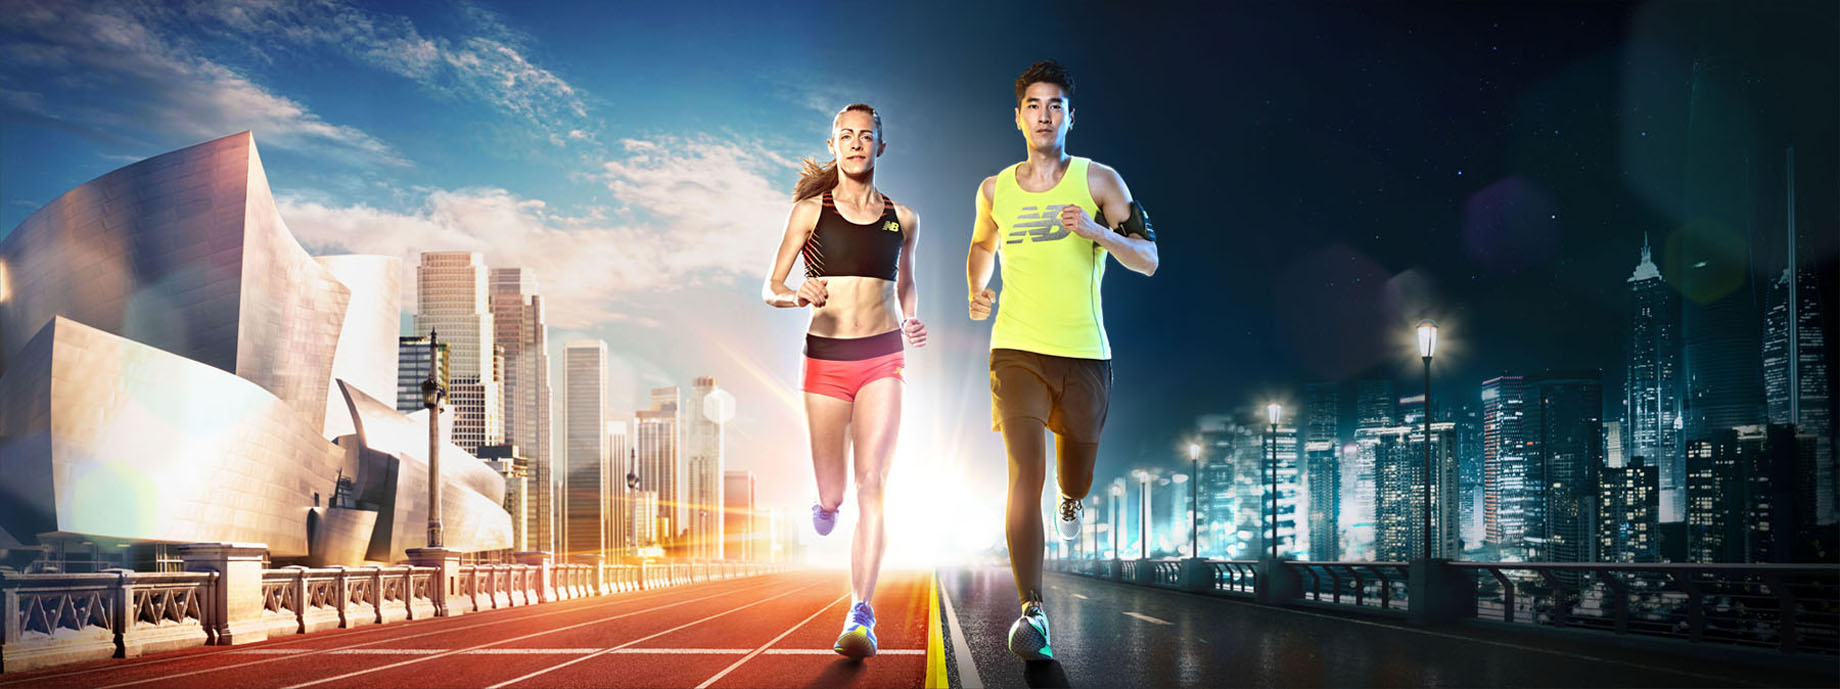 Jenny Simpson Mark Chao New Balance China photo Monte Isom